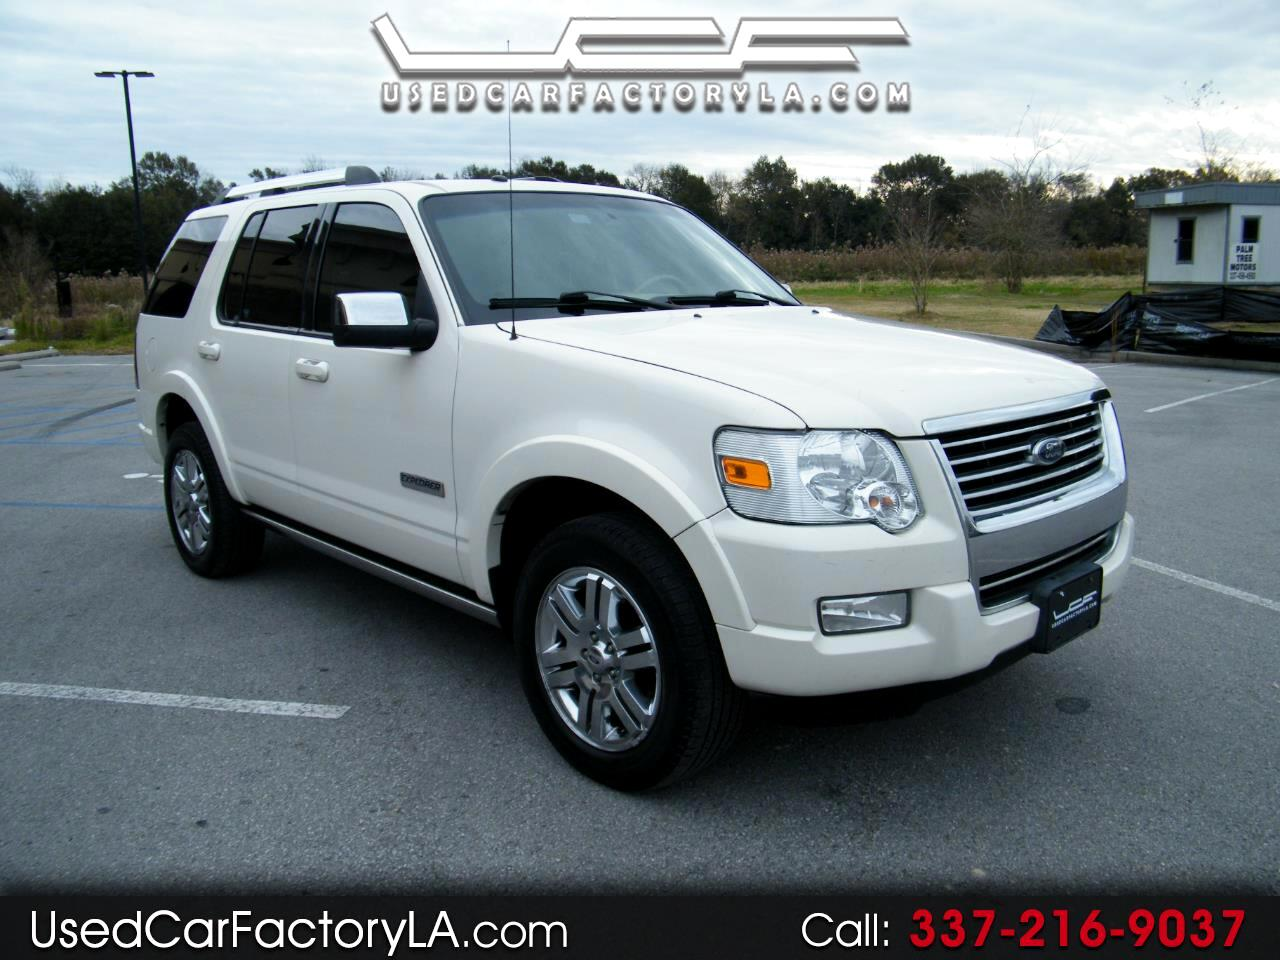 2008 Ford Explorer Limited 4.0L 2WD